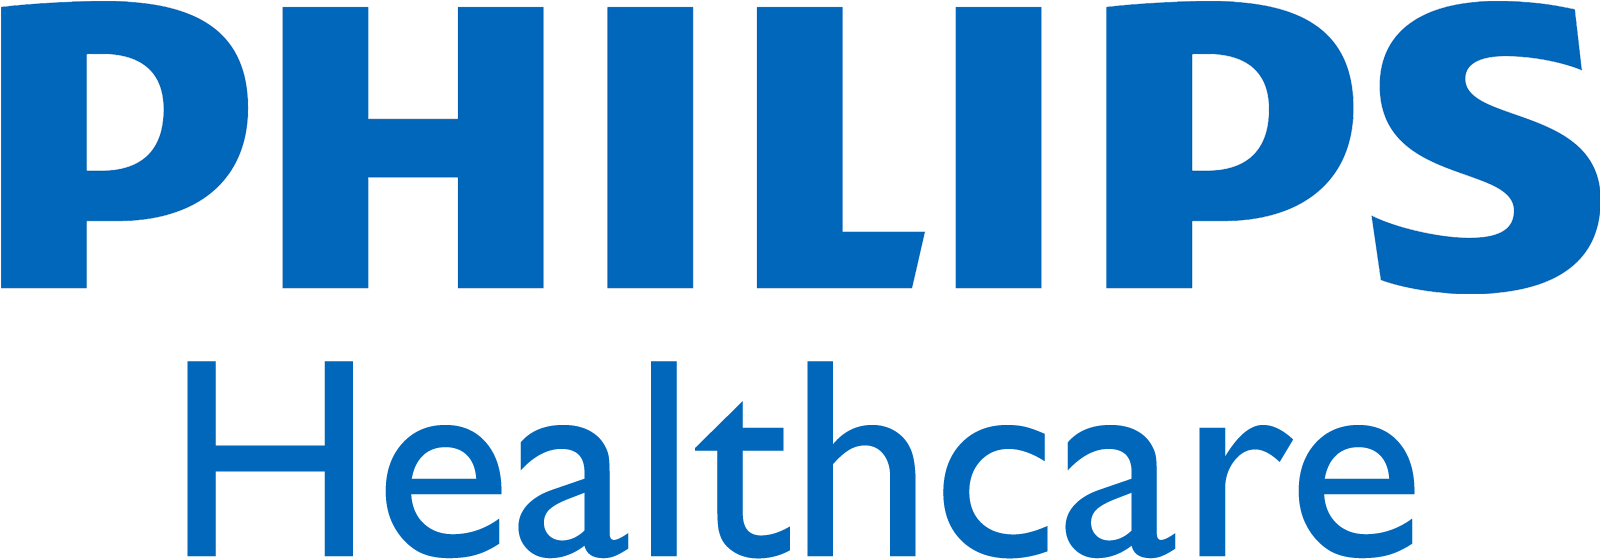 Philipsis one of the largest medical device companies in Singapore